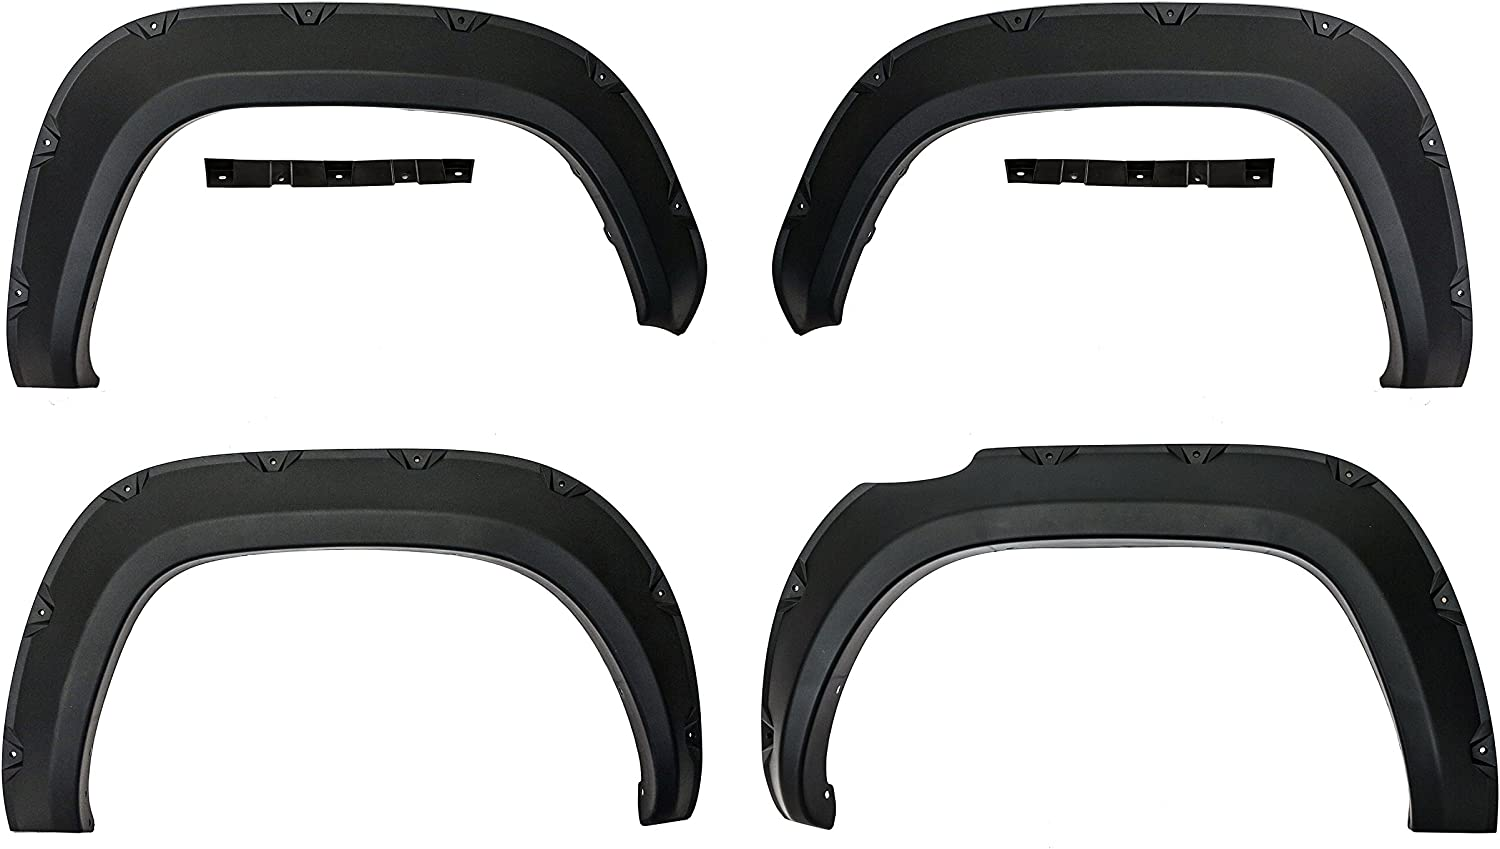 Galaxy Auto Fender Flares for 2016-20 Toyota Tacoma 4 Piece Set Pocket Riveted Style in Paintable Smooth Matte Black